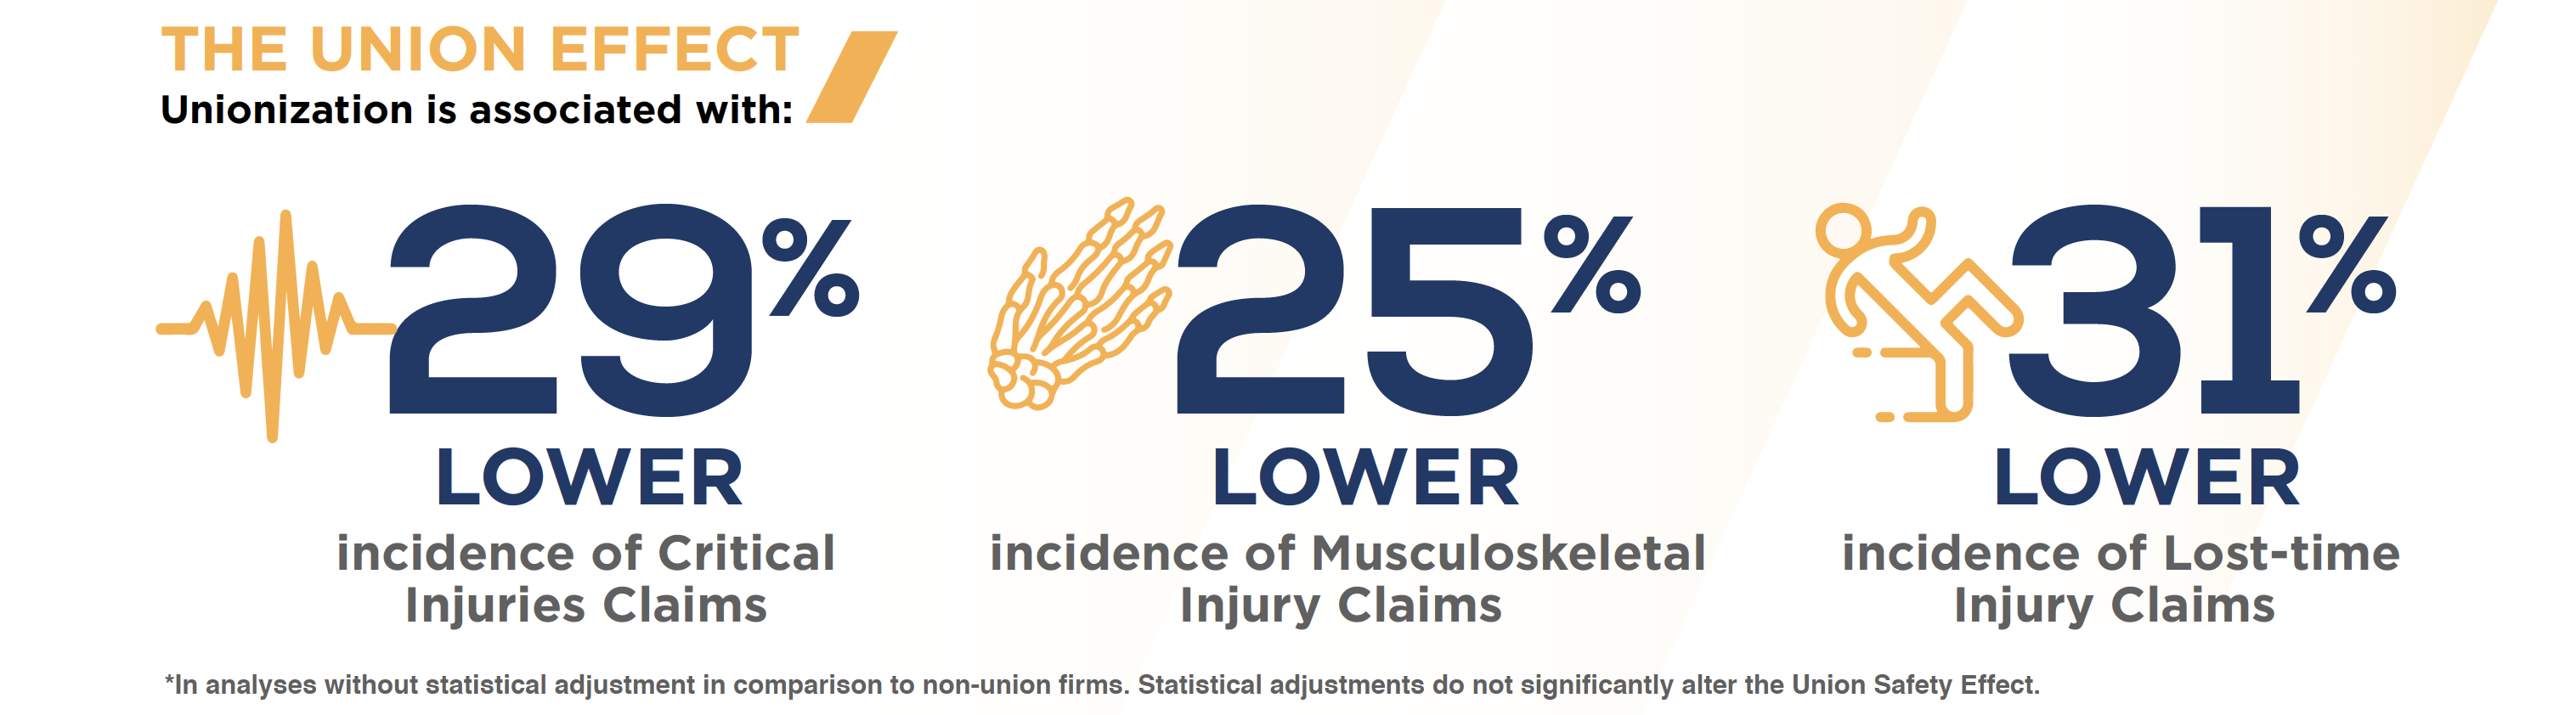 The union effect. Unionization is associated with: 29 percent lower incidence of critical injuries claims. 25. percent lower incidence of musculoskeletal injury claims. 31 percent lower incidence of lost time injury claims. In analyses without statistical adjustment in comparison to non-union firms. Statistical adjustments do not significantly alter the union safety effect.